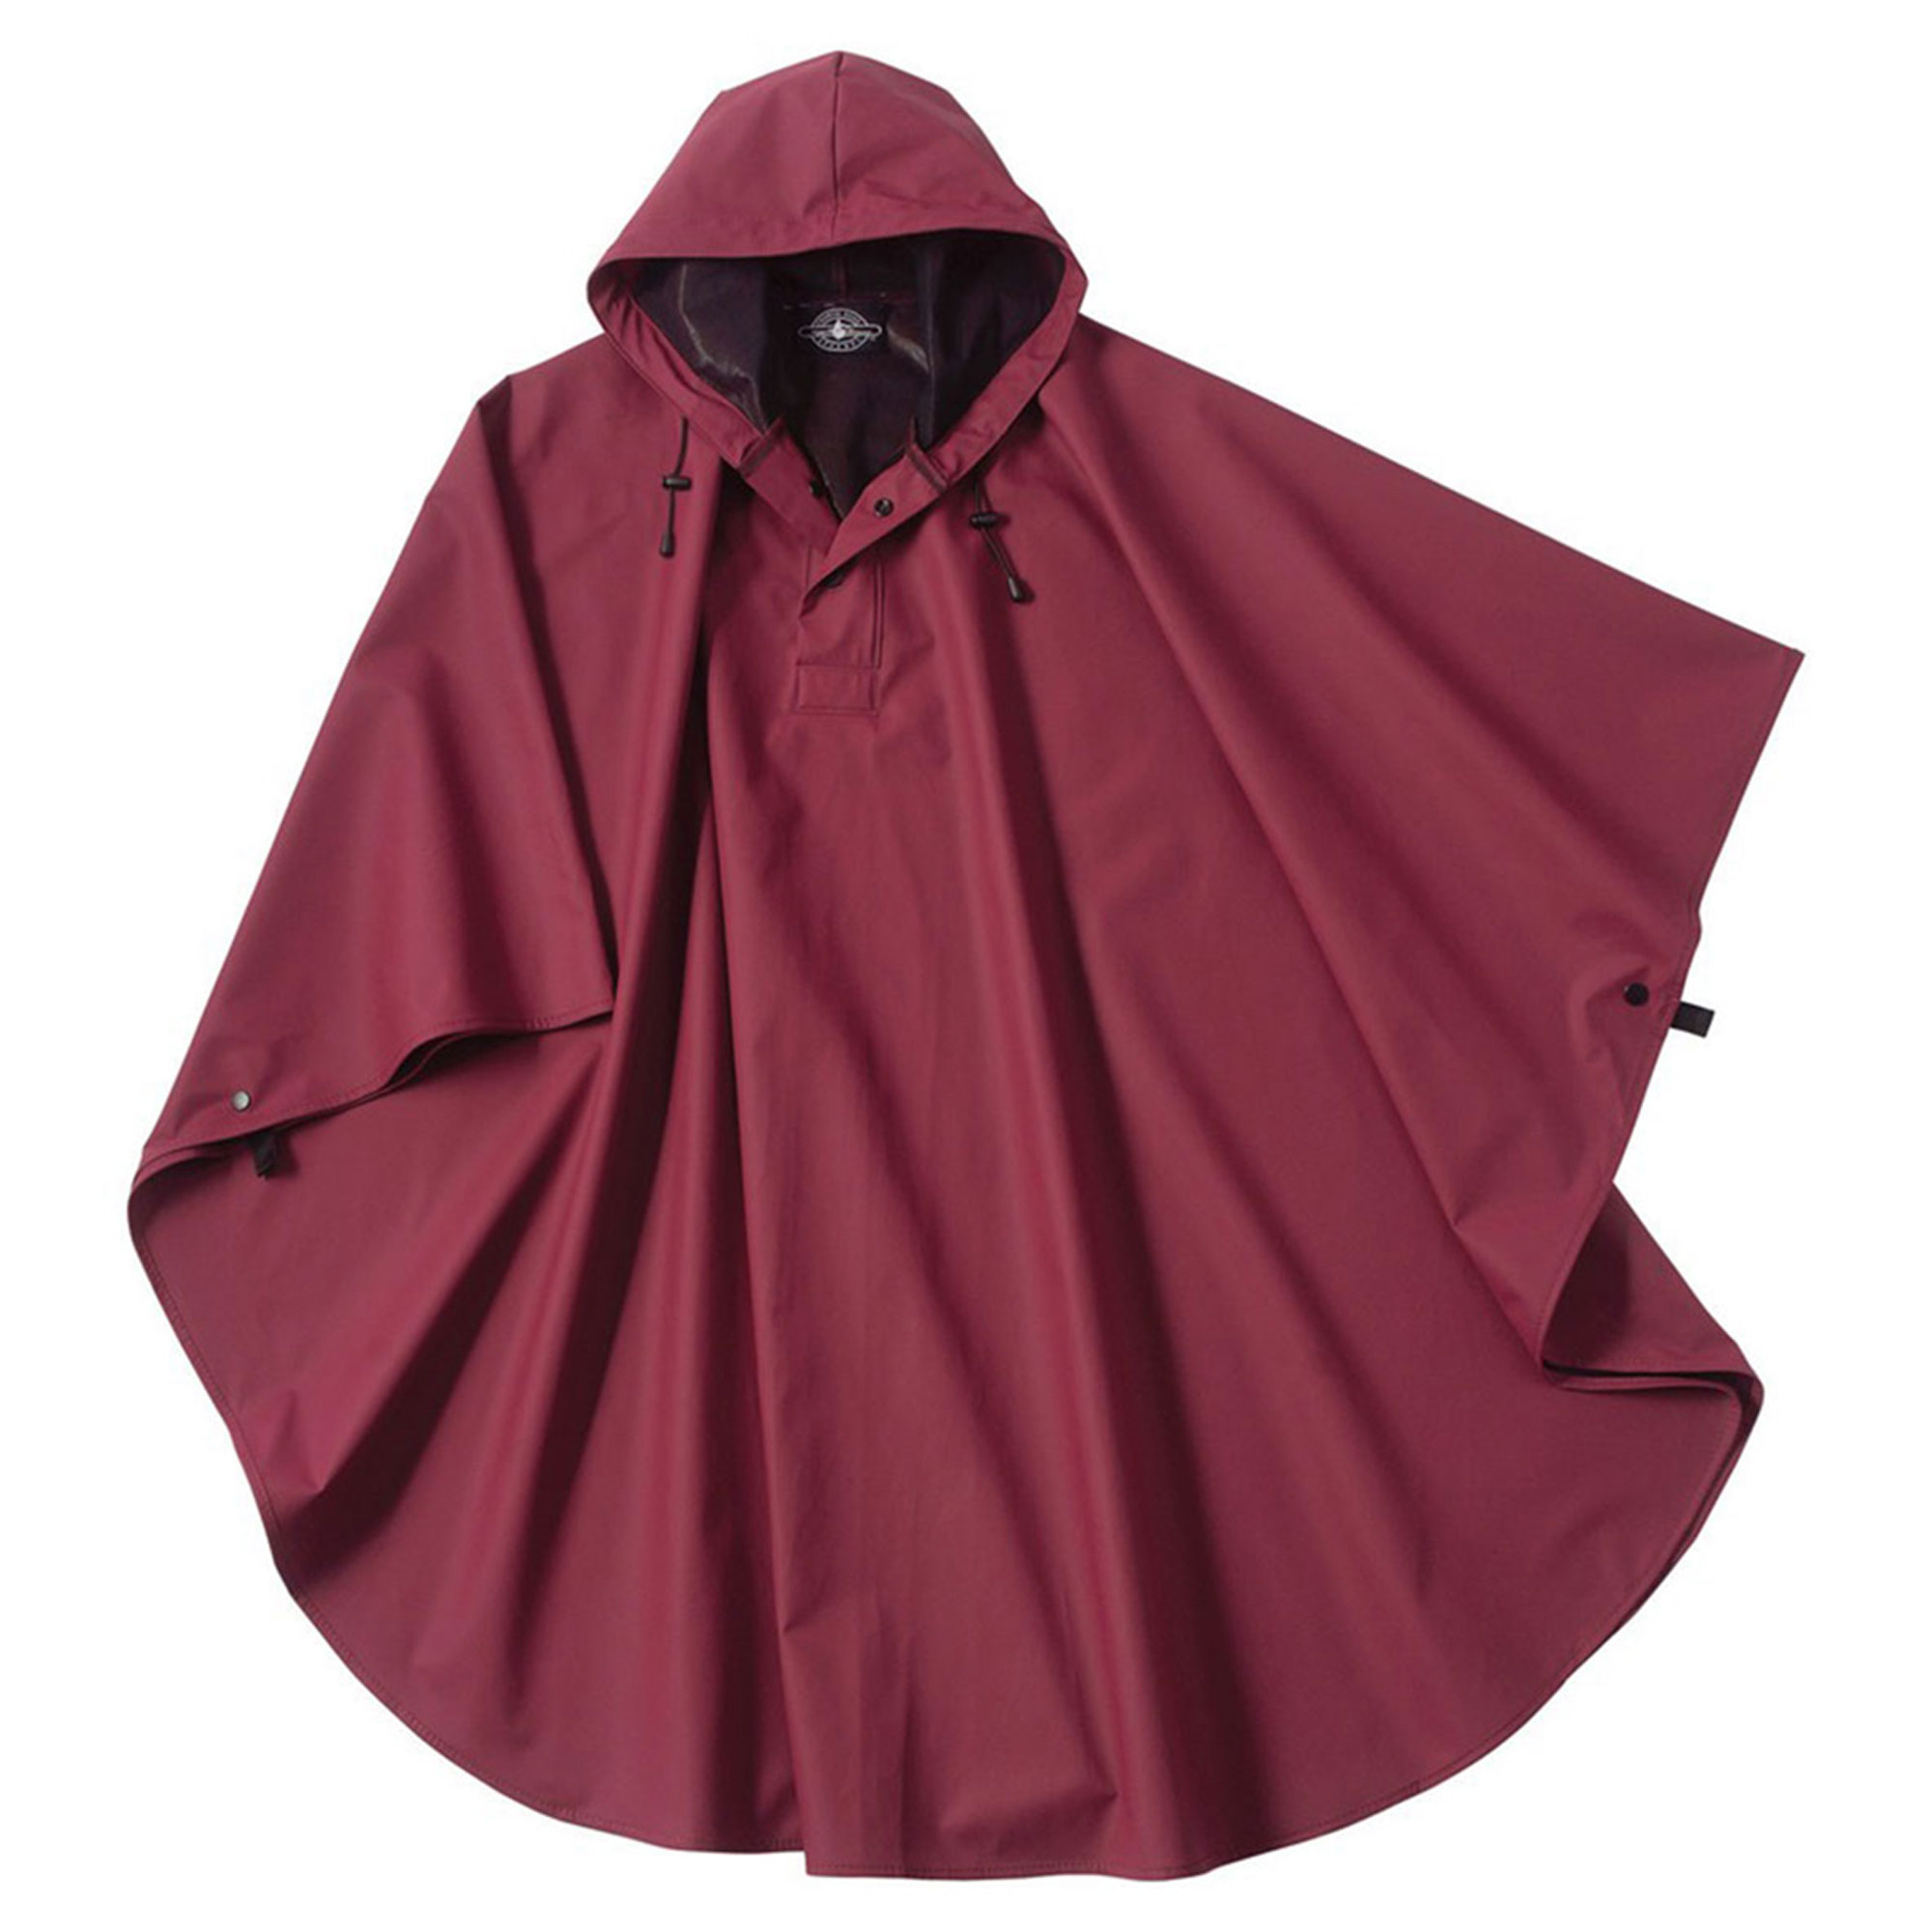 Charles River Apparel Women's Waterproof Pacific Poncho by Charles River Apparel